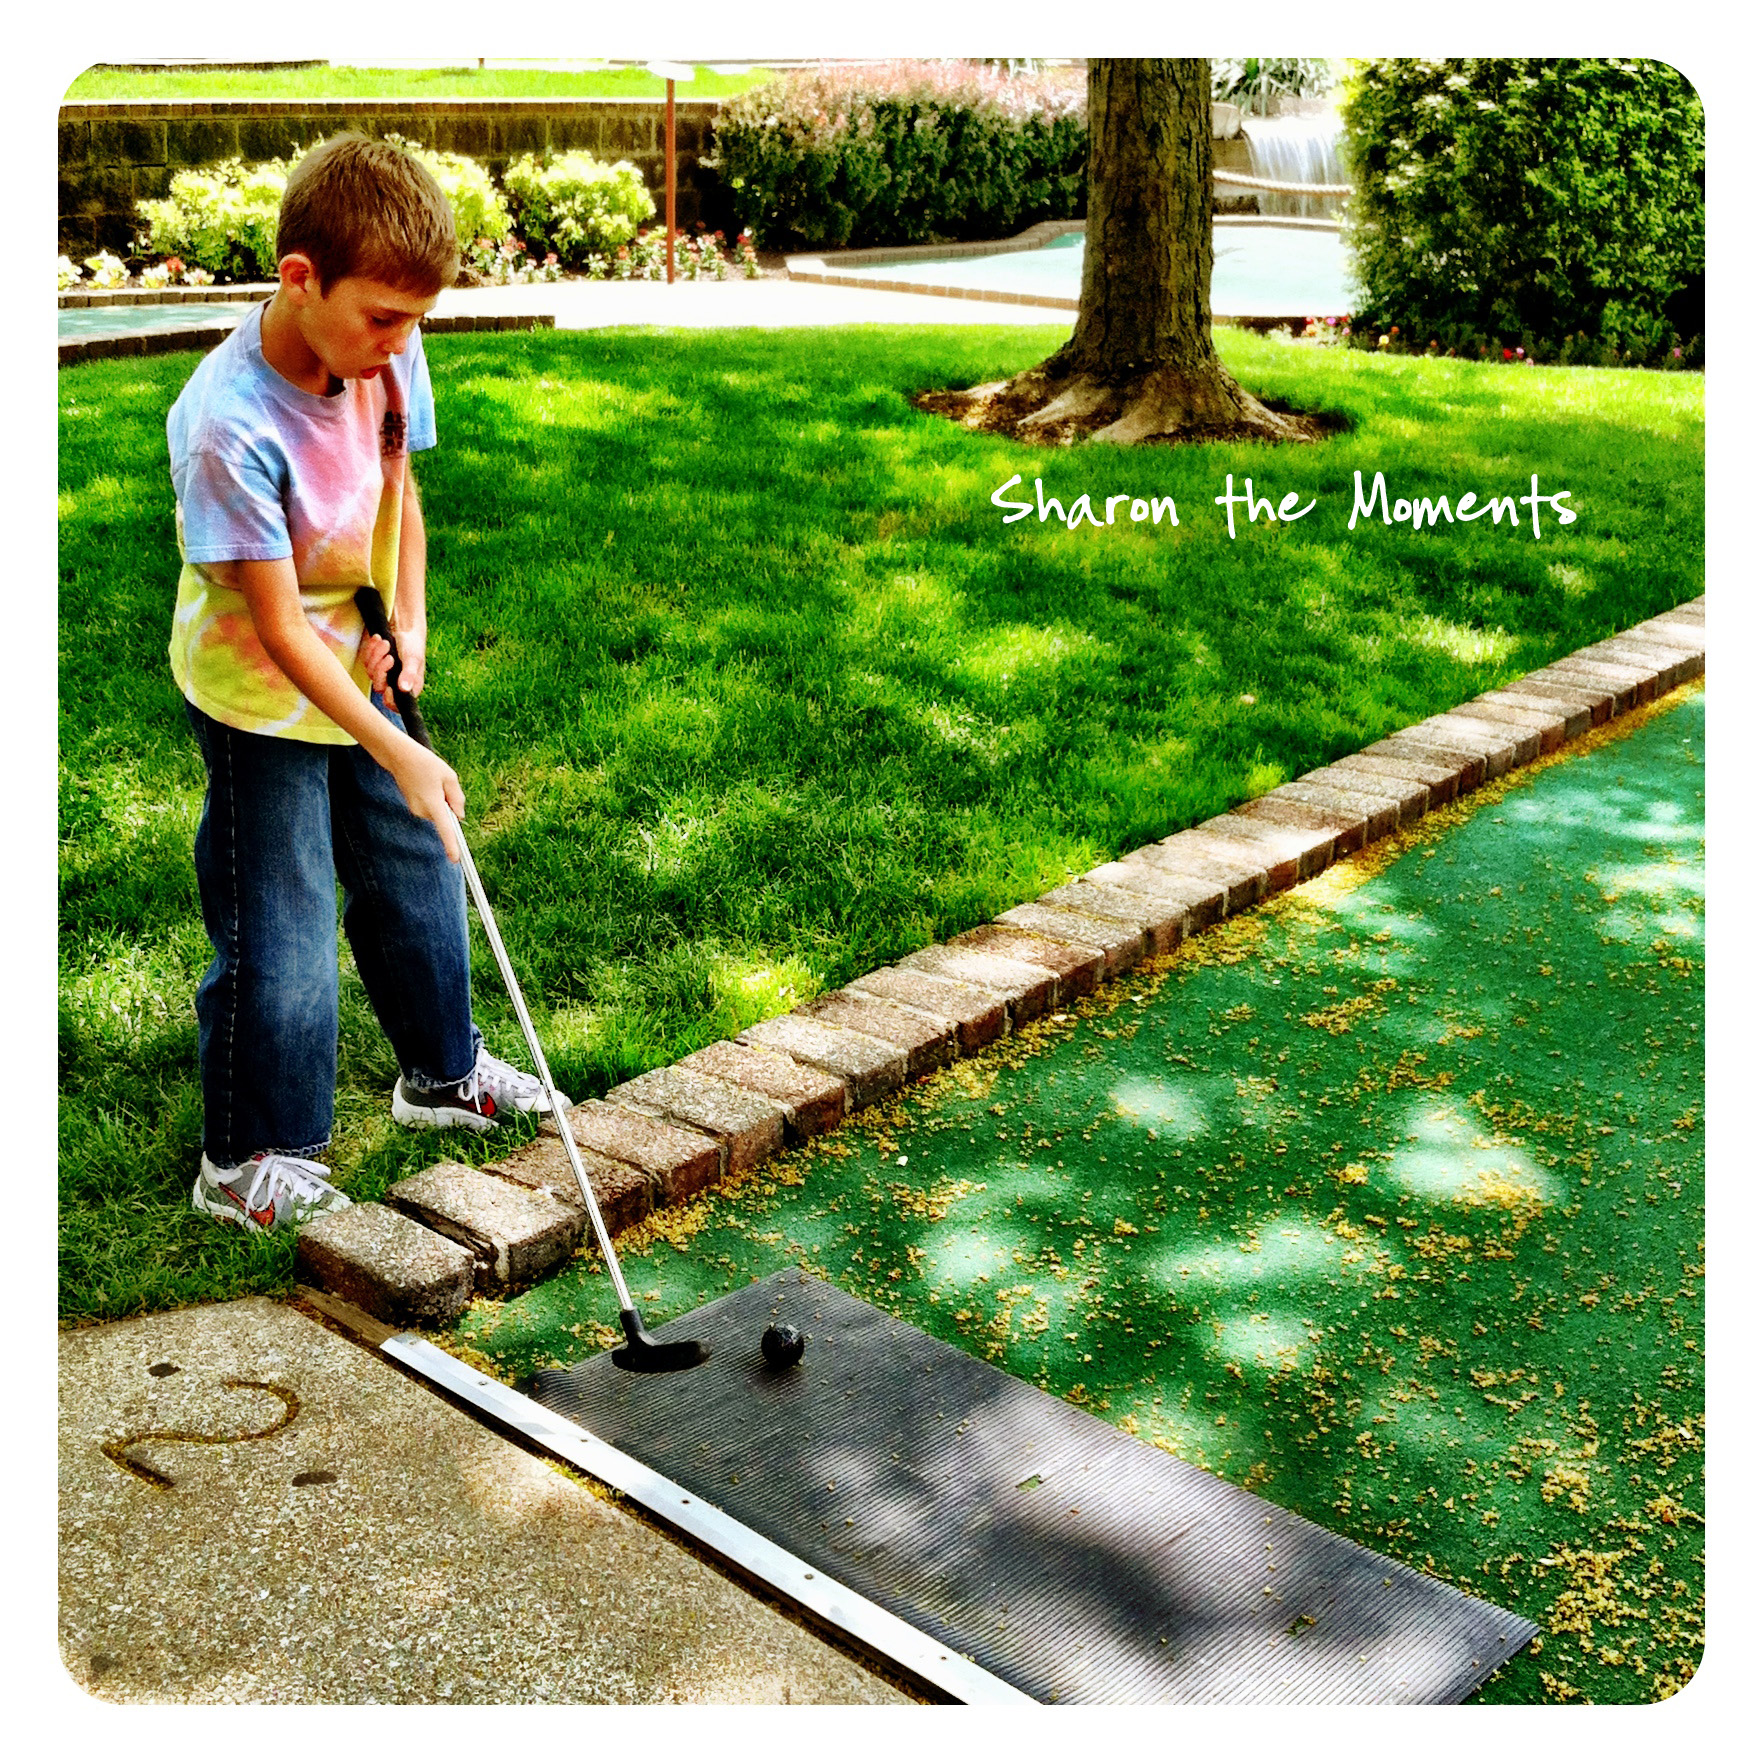 iPhoneography Tuesday is Monday Week Putt Putt Golf|Sharon the Moments blog